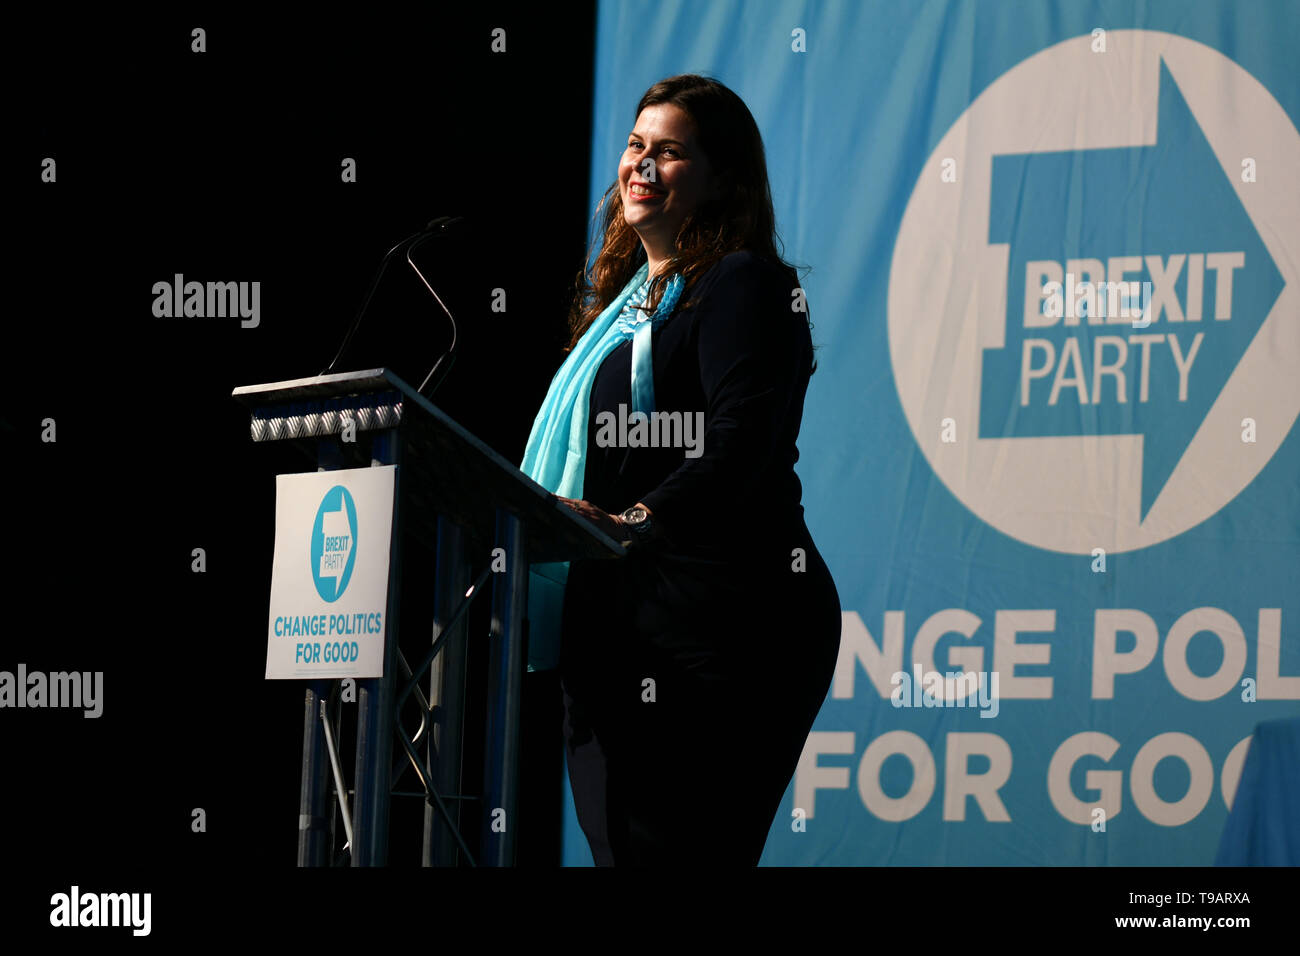 Edinburgh, Scotland, UK. 17th May 2019. Nigel Farage in Edinburgh for a rally with the Brexit Party's European election candidates. Pictured Karina Walker. Credit: Steven Scott Taylor/Alamy Live News Stock Photo